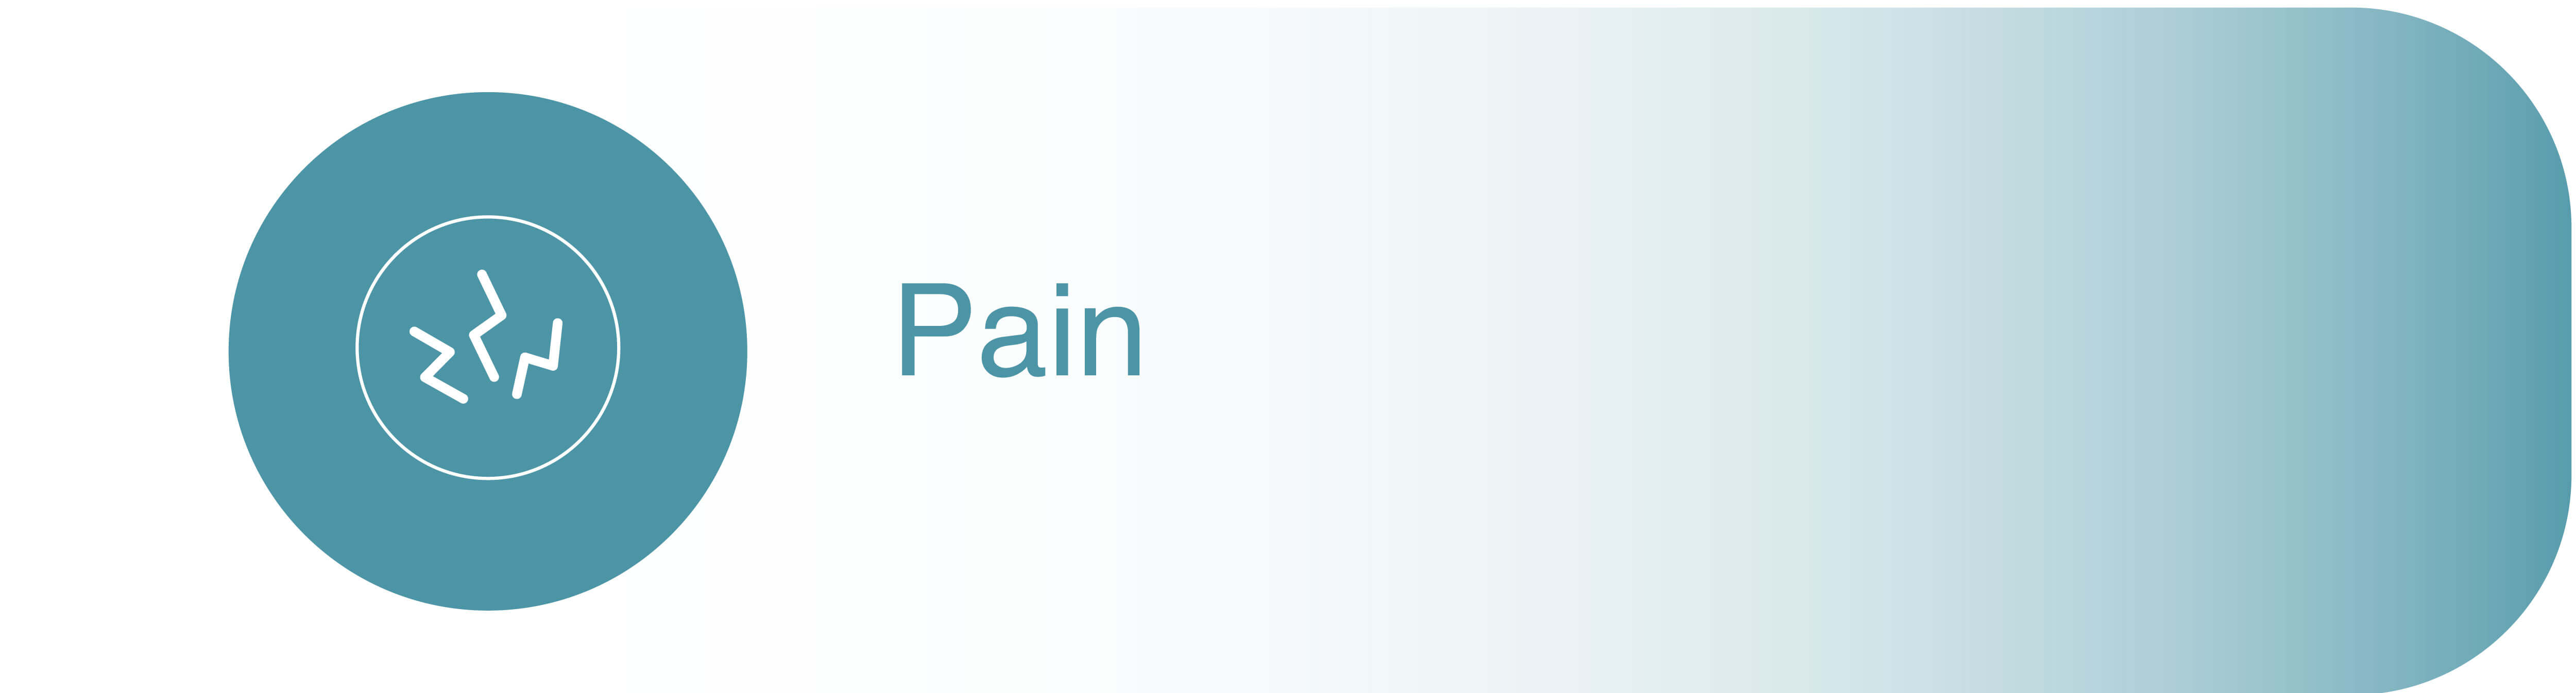 Pain in piles